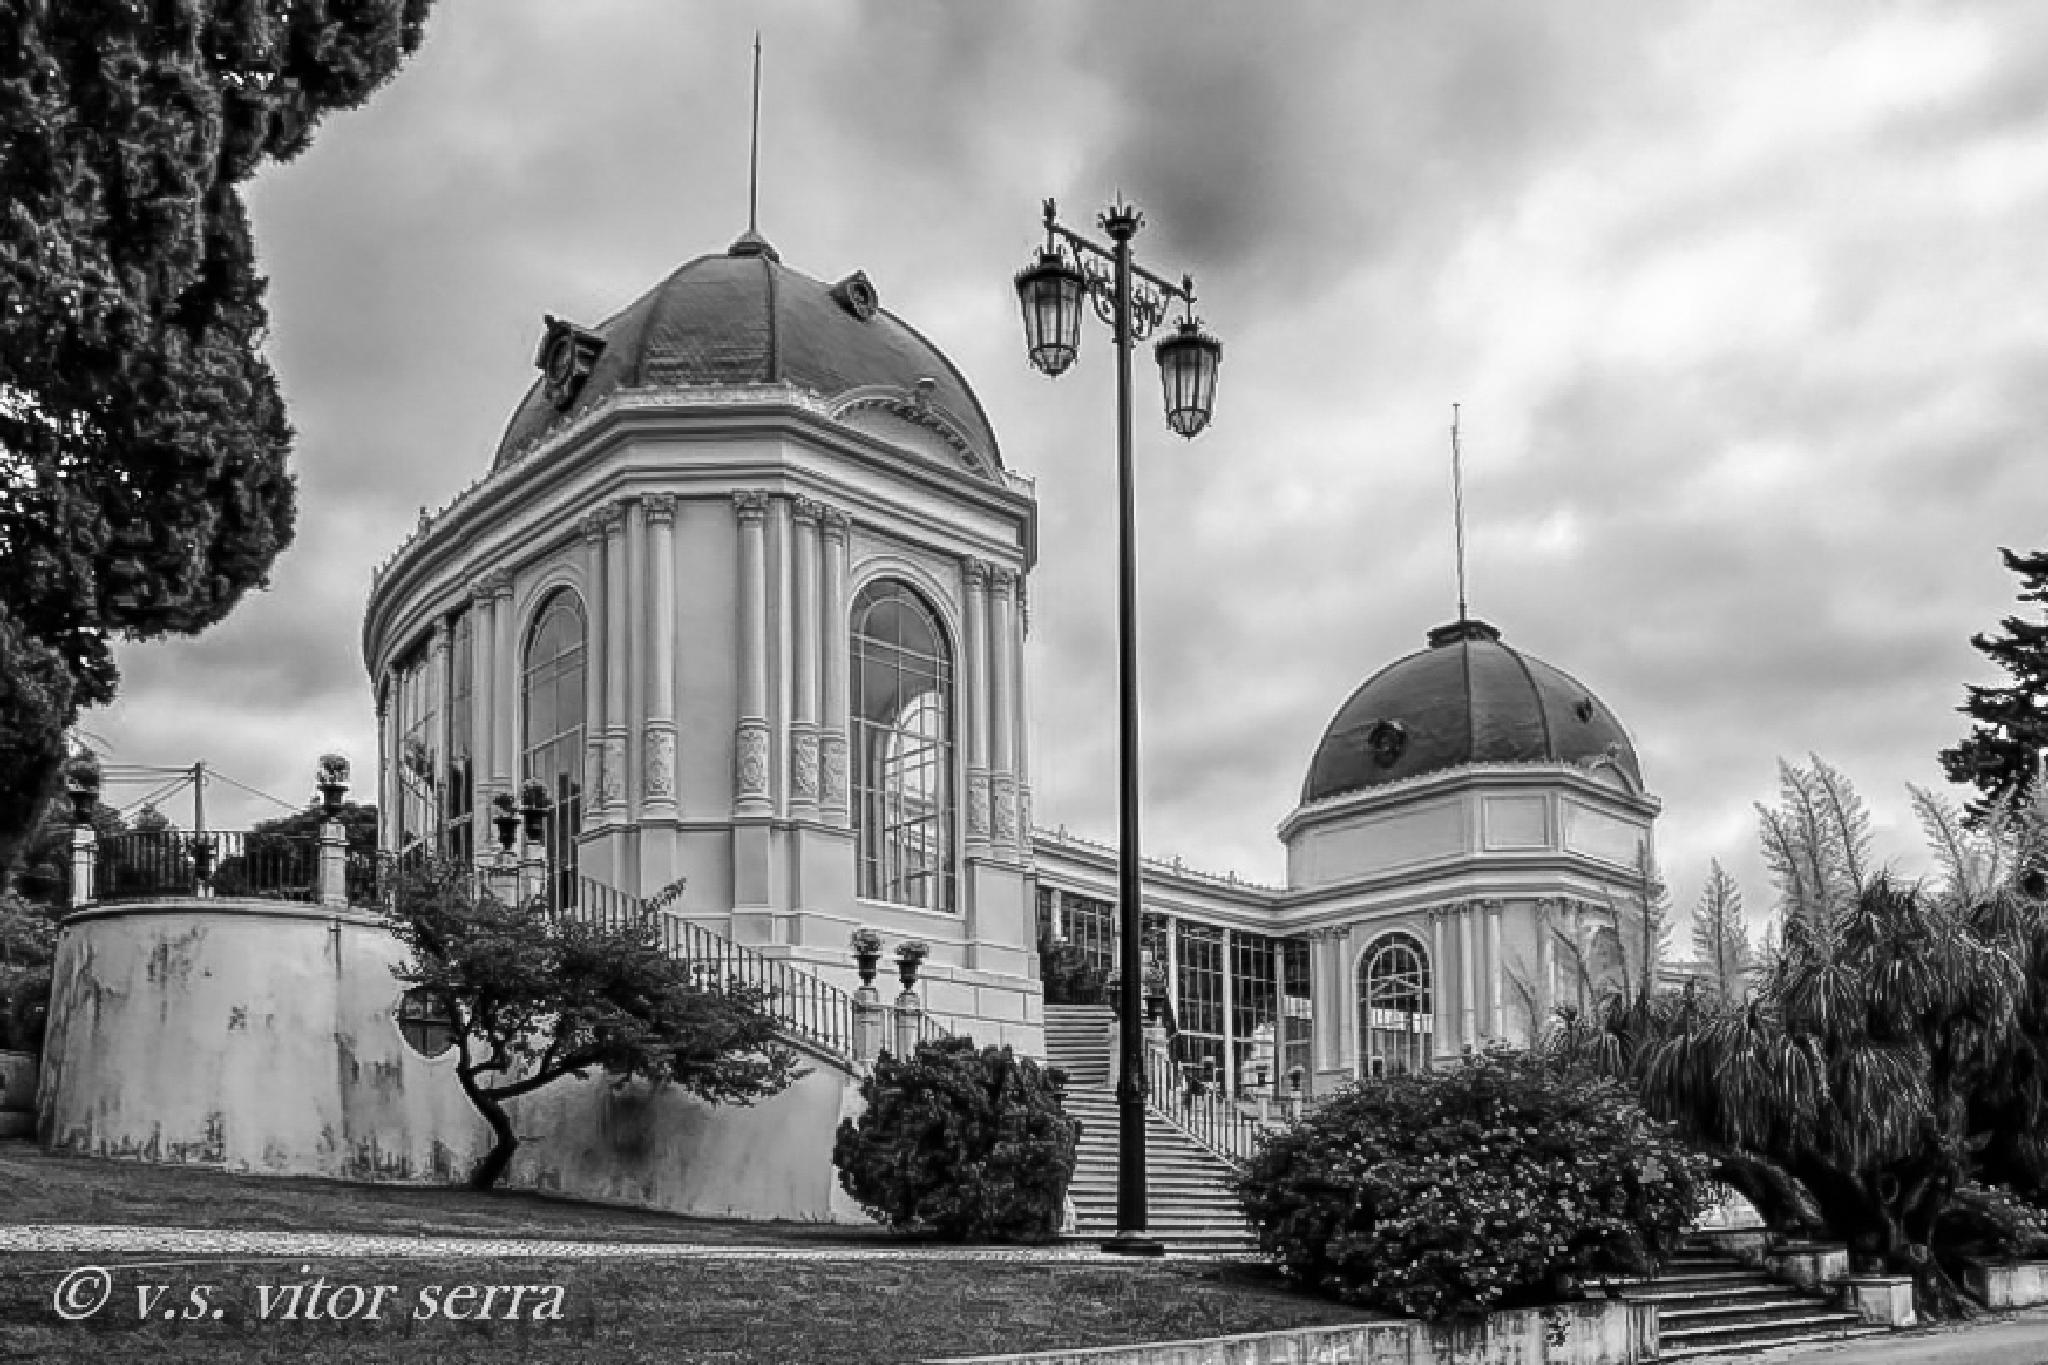 Former Royal greenhouse by vitorserra1